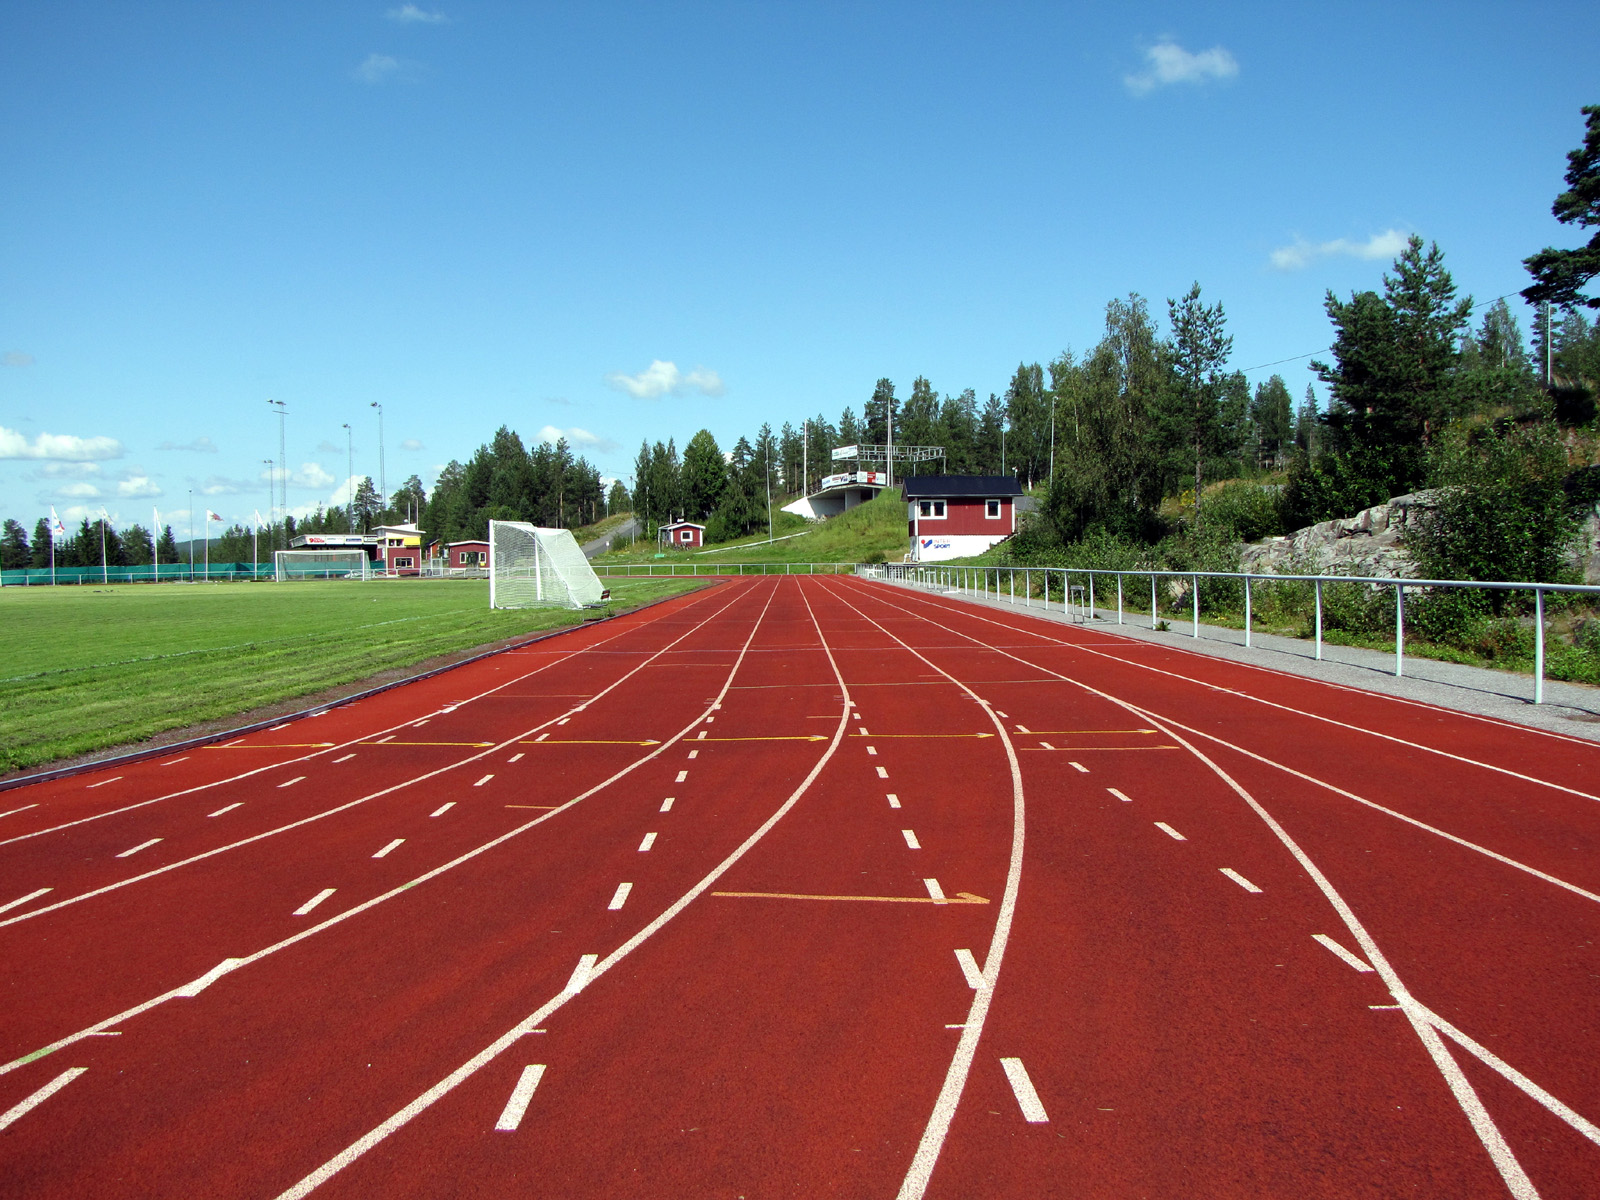 athletics track image